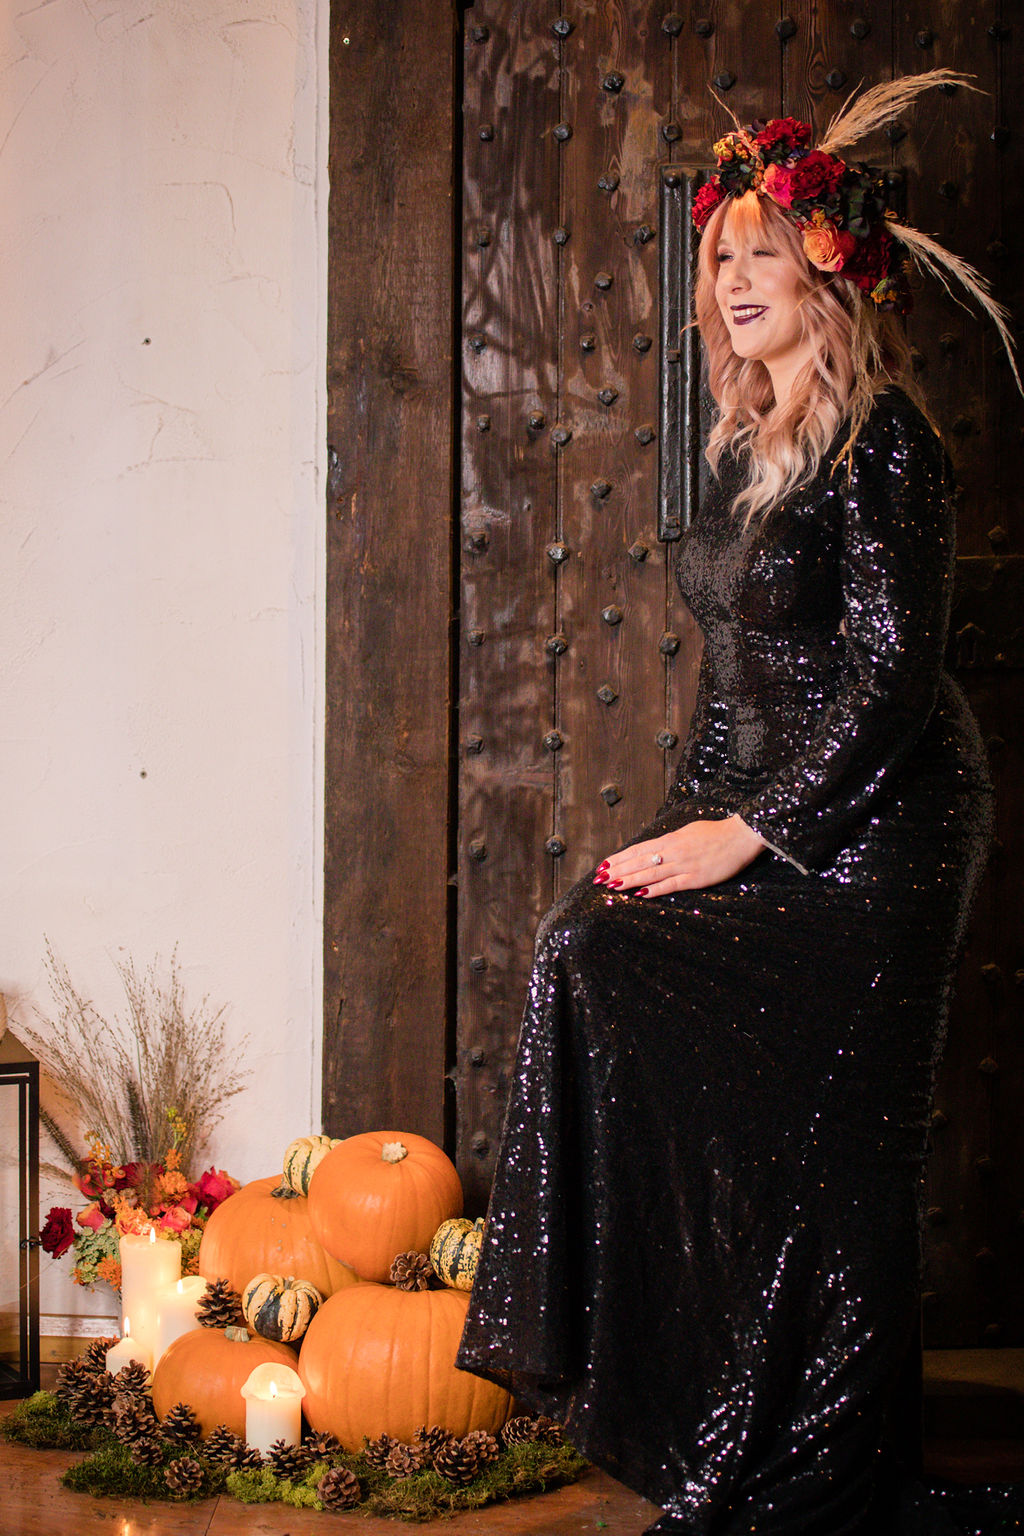 dark autumn wedding - halloween wedding - bride with pumpkins - black wedding dress - autumn bride - alternative wedding dress